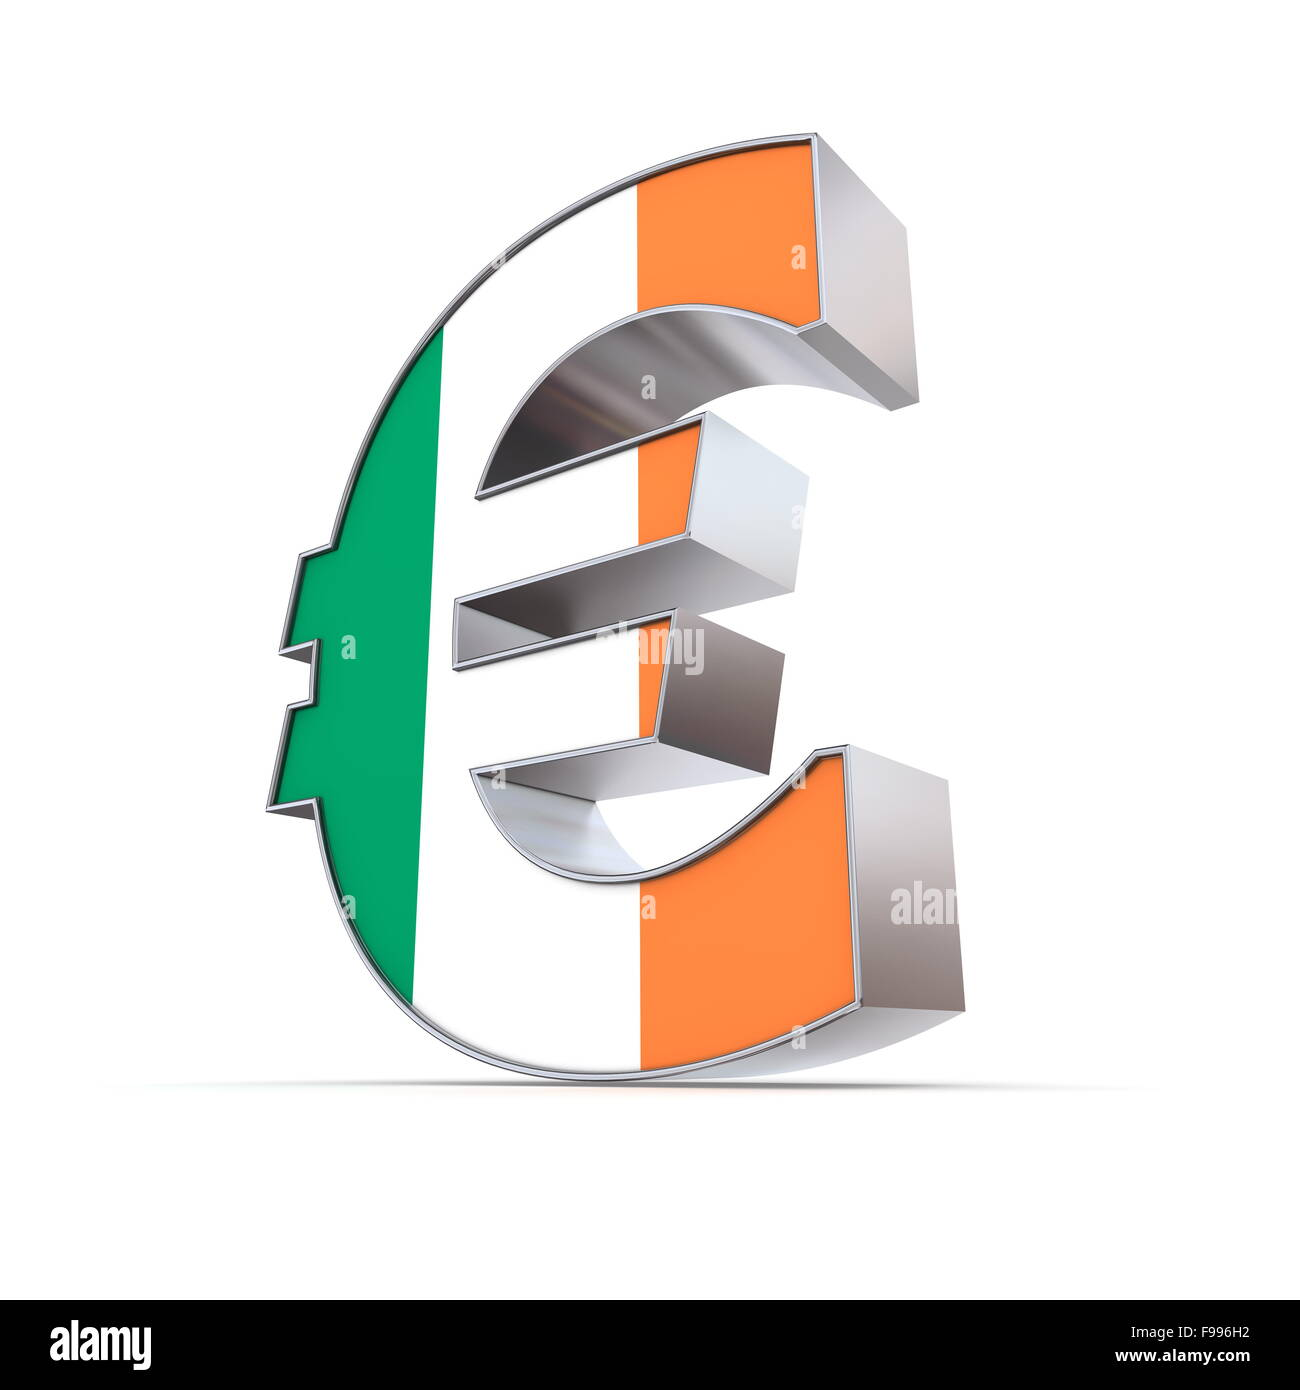 Symbole Euro brillant texturé - avant - Pavillon de l'Irlande Photo Stock